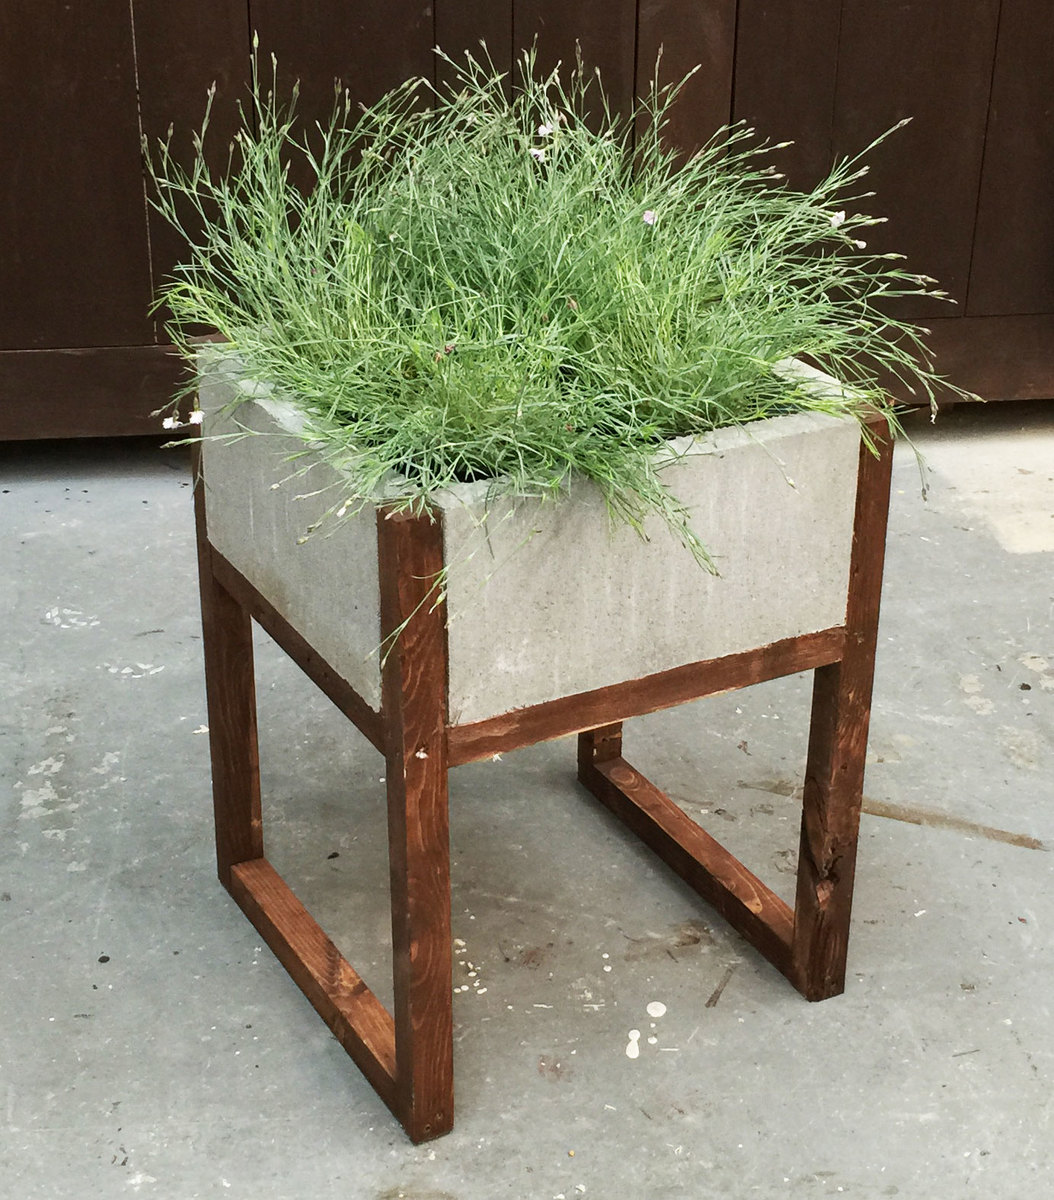 Modern Cement Planters Ana White Home Depot Dih Workshop Modern Paver Planter